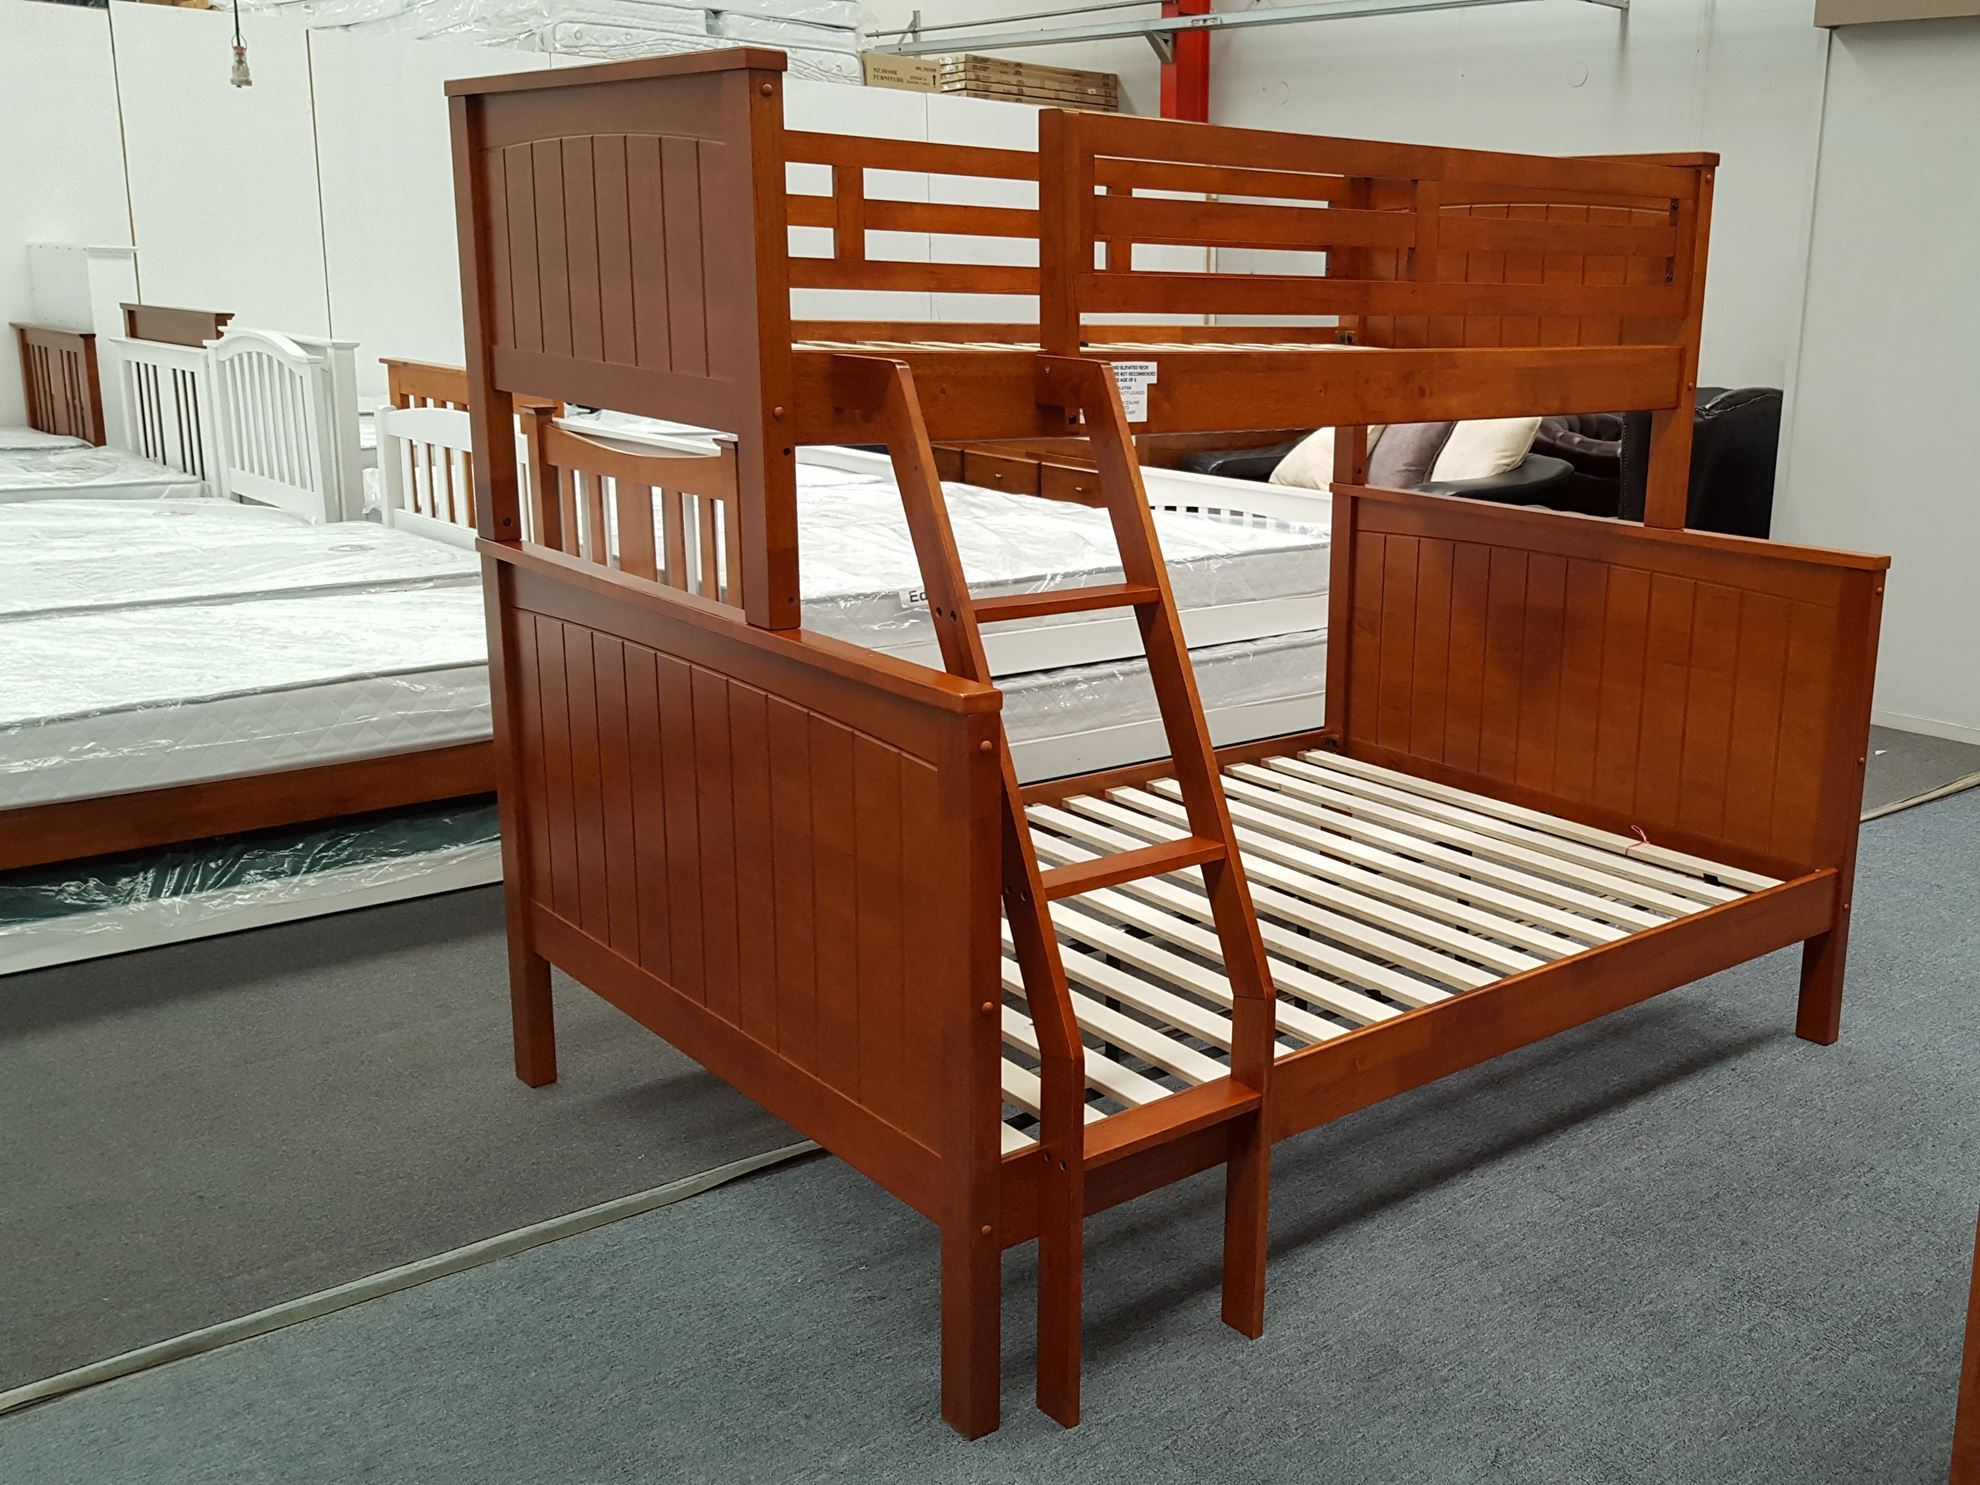 Furniture Place Emily DoubleSingle Bunk Bed in Antique Oak